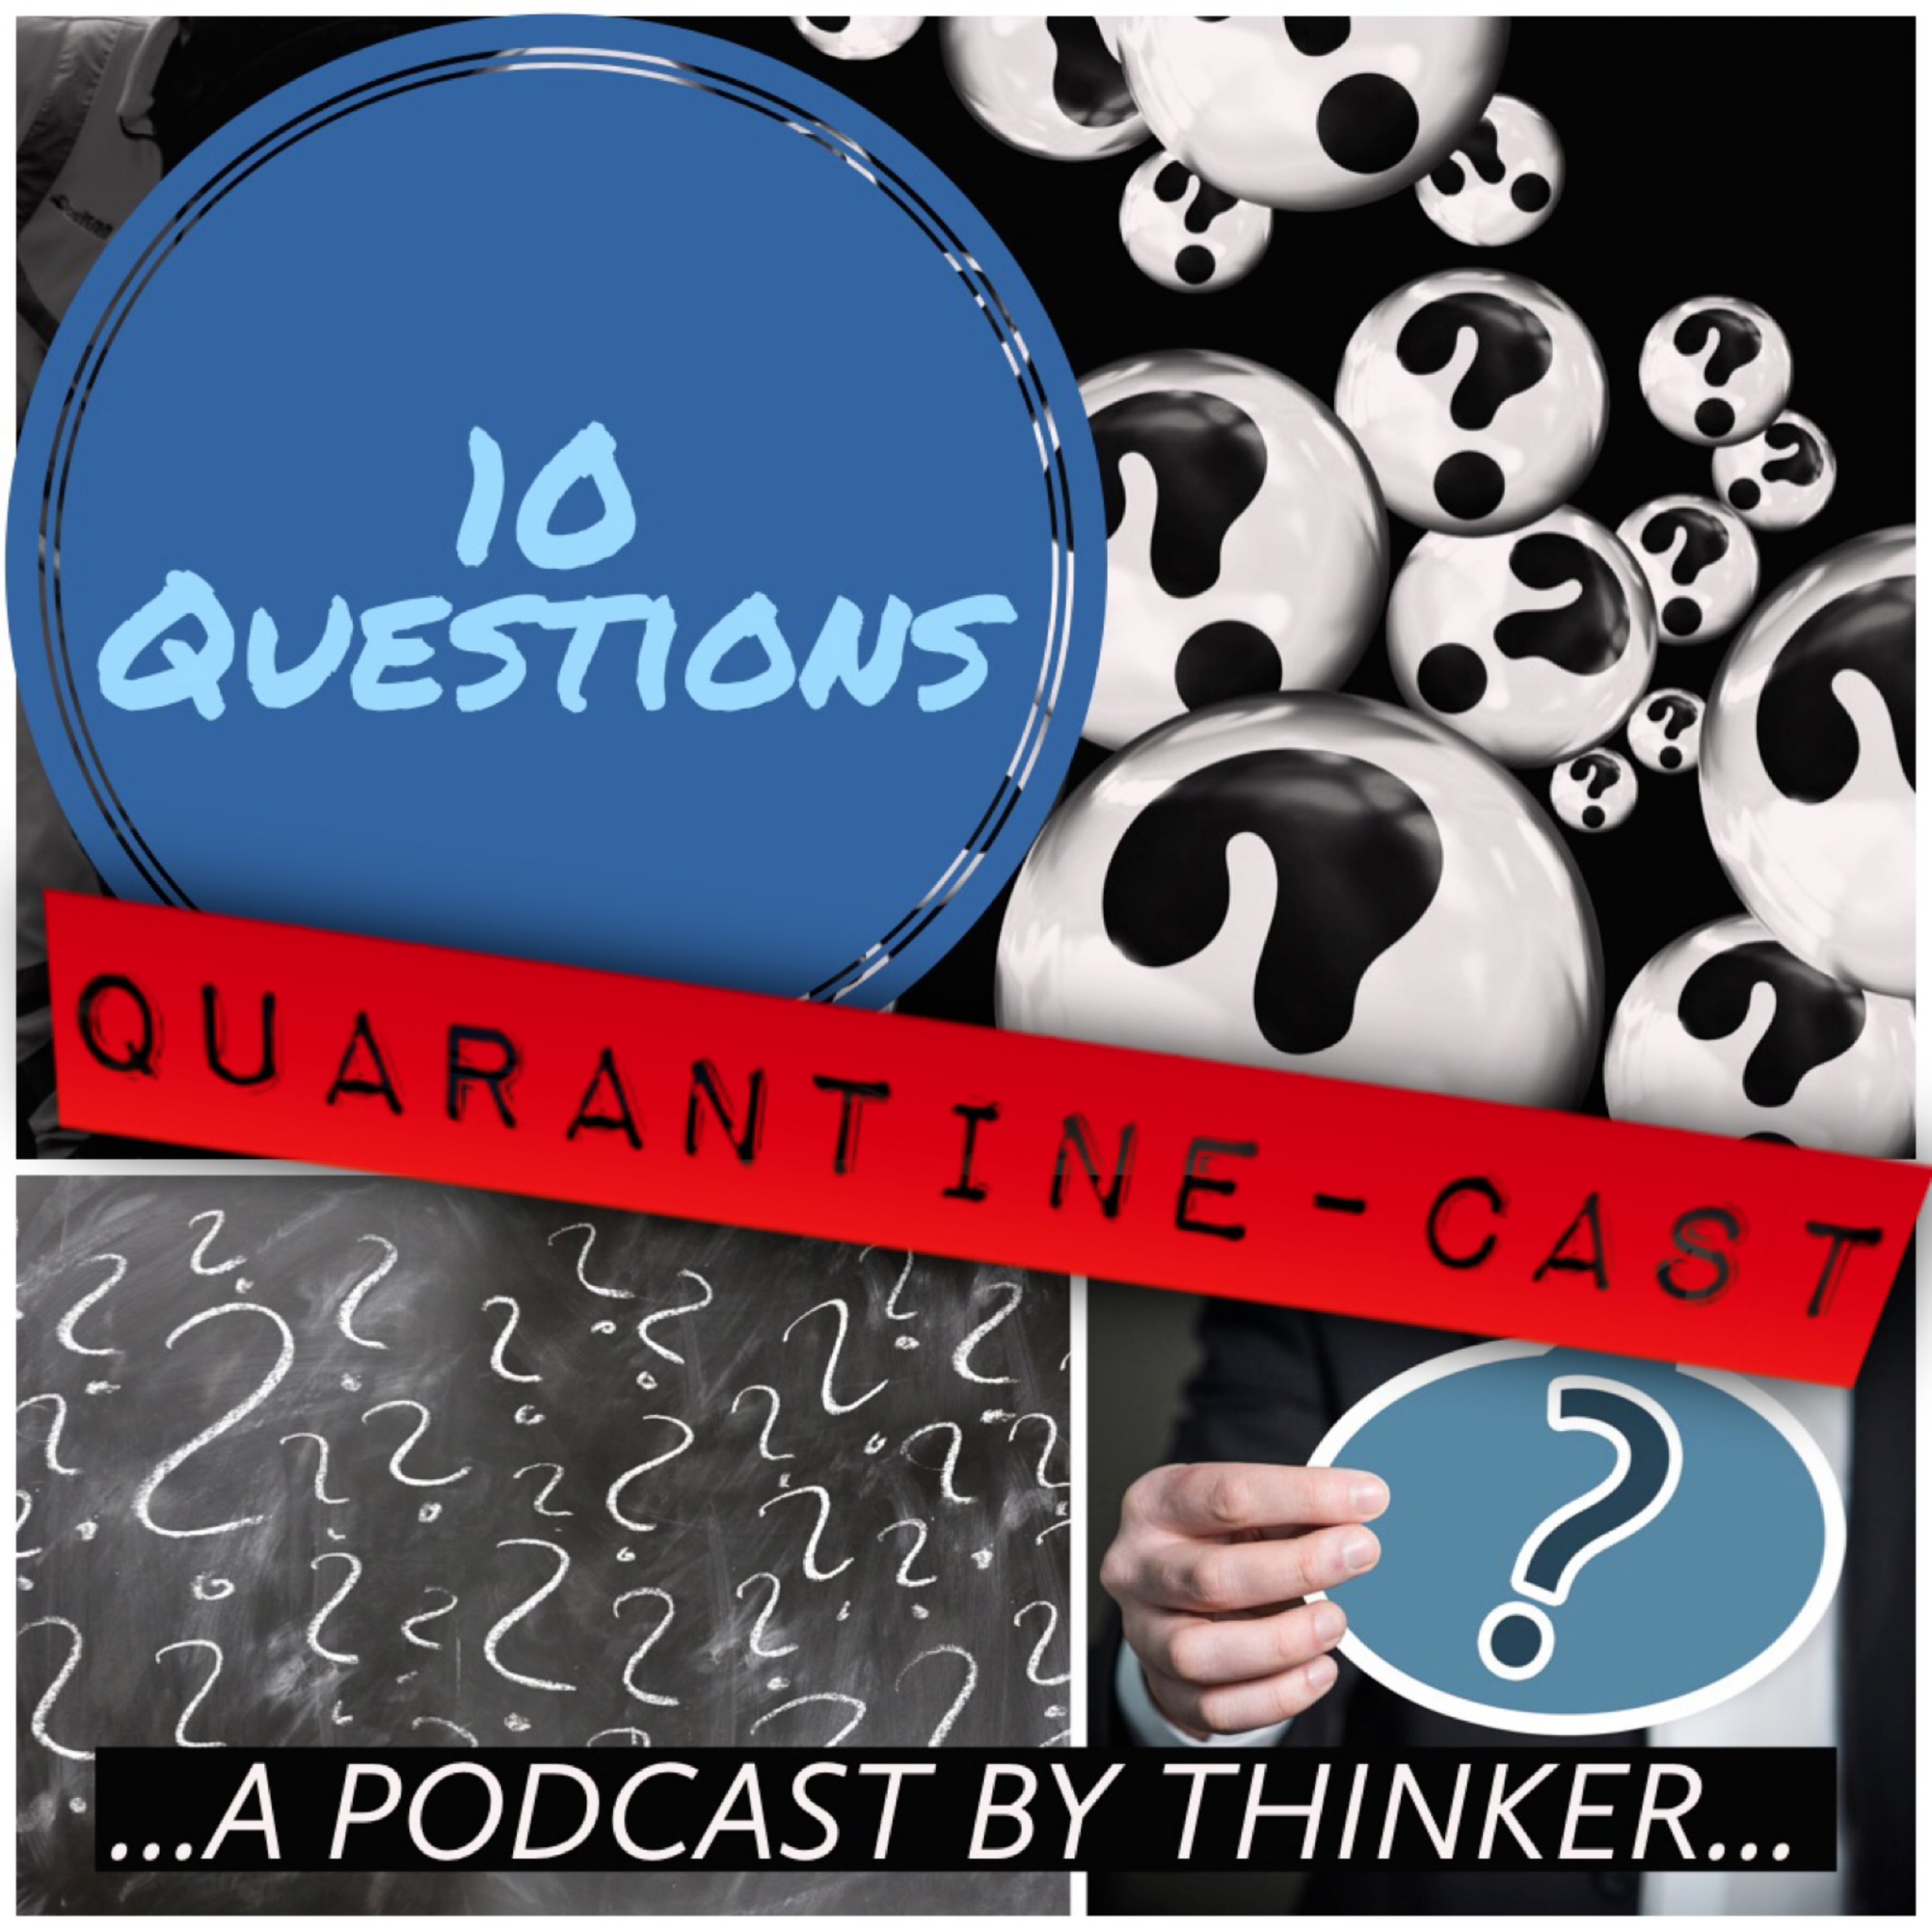 S2E24: The Quarantine-Cast Series - Infosystir and Cxstephens...have their party crashed...